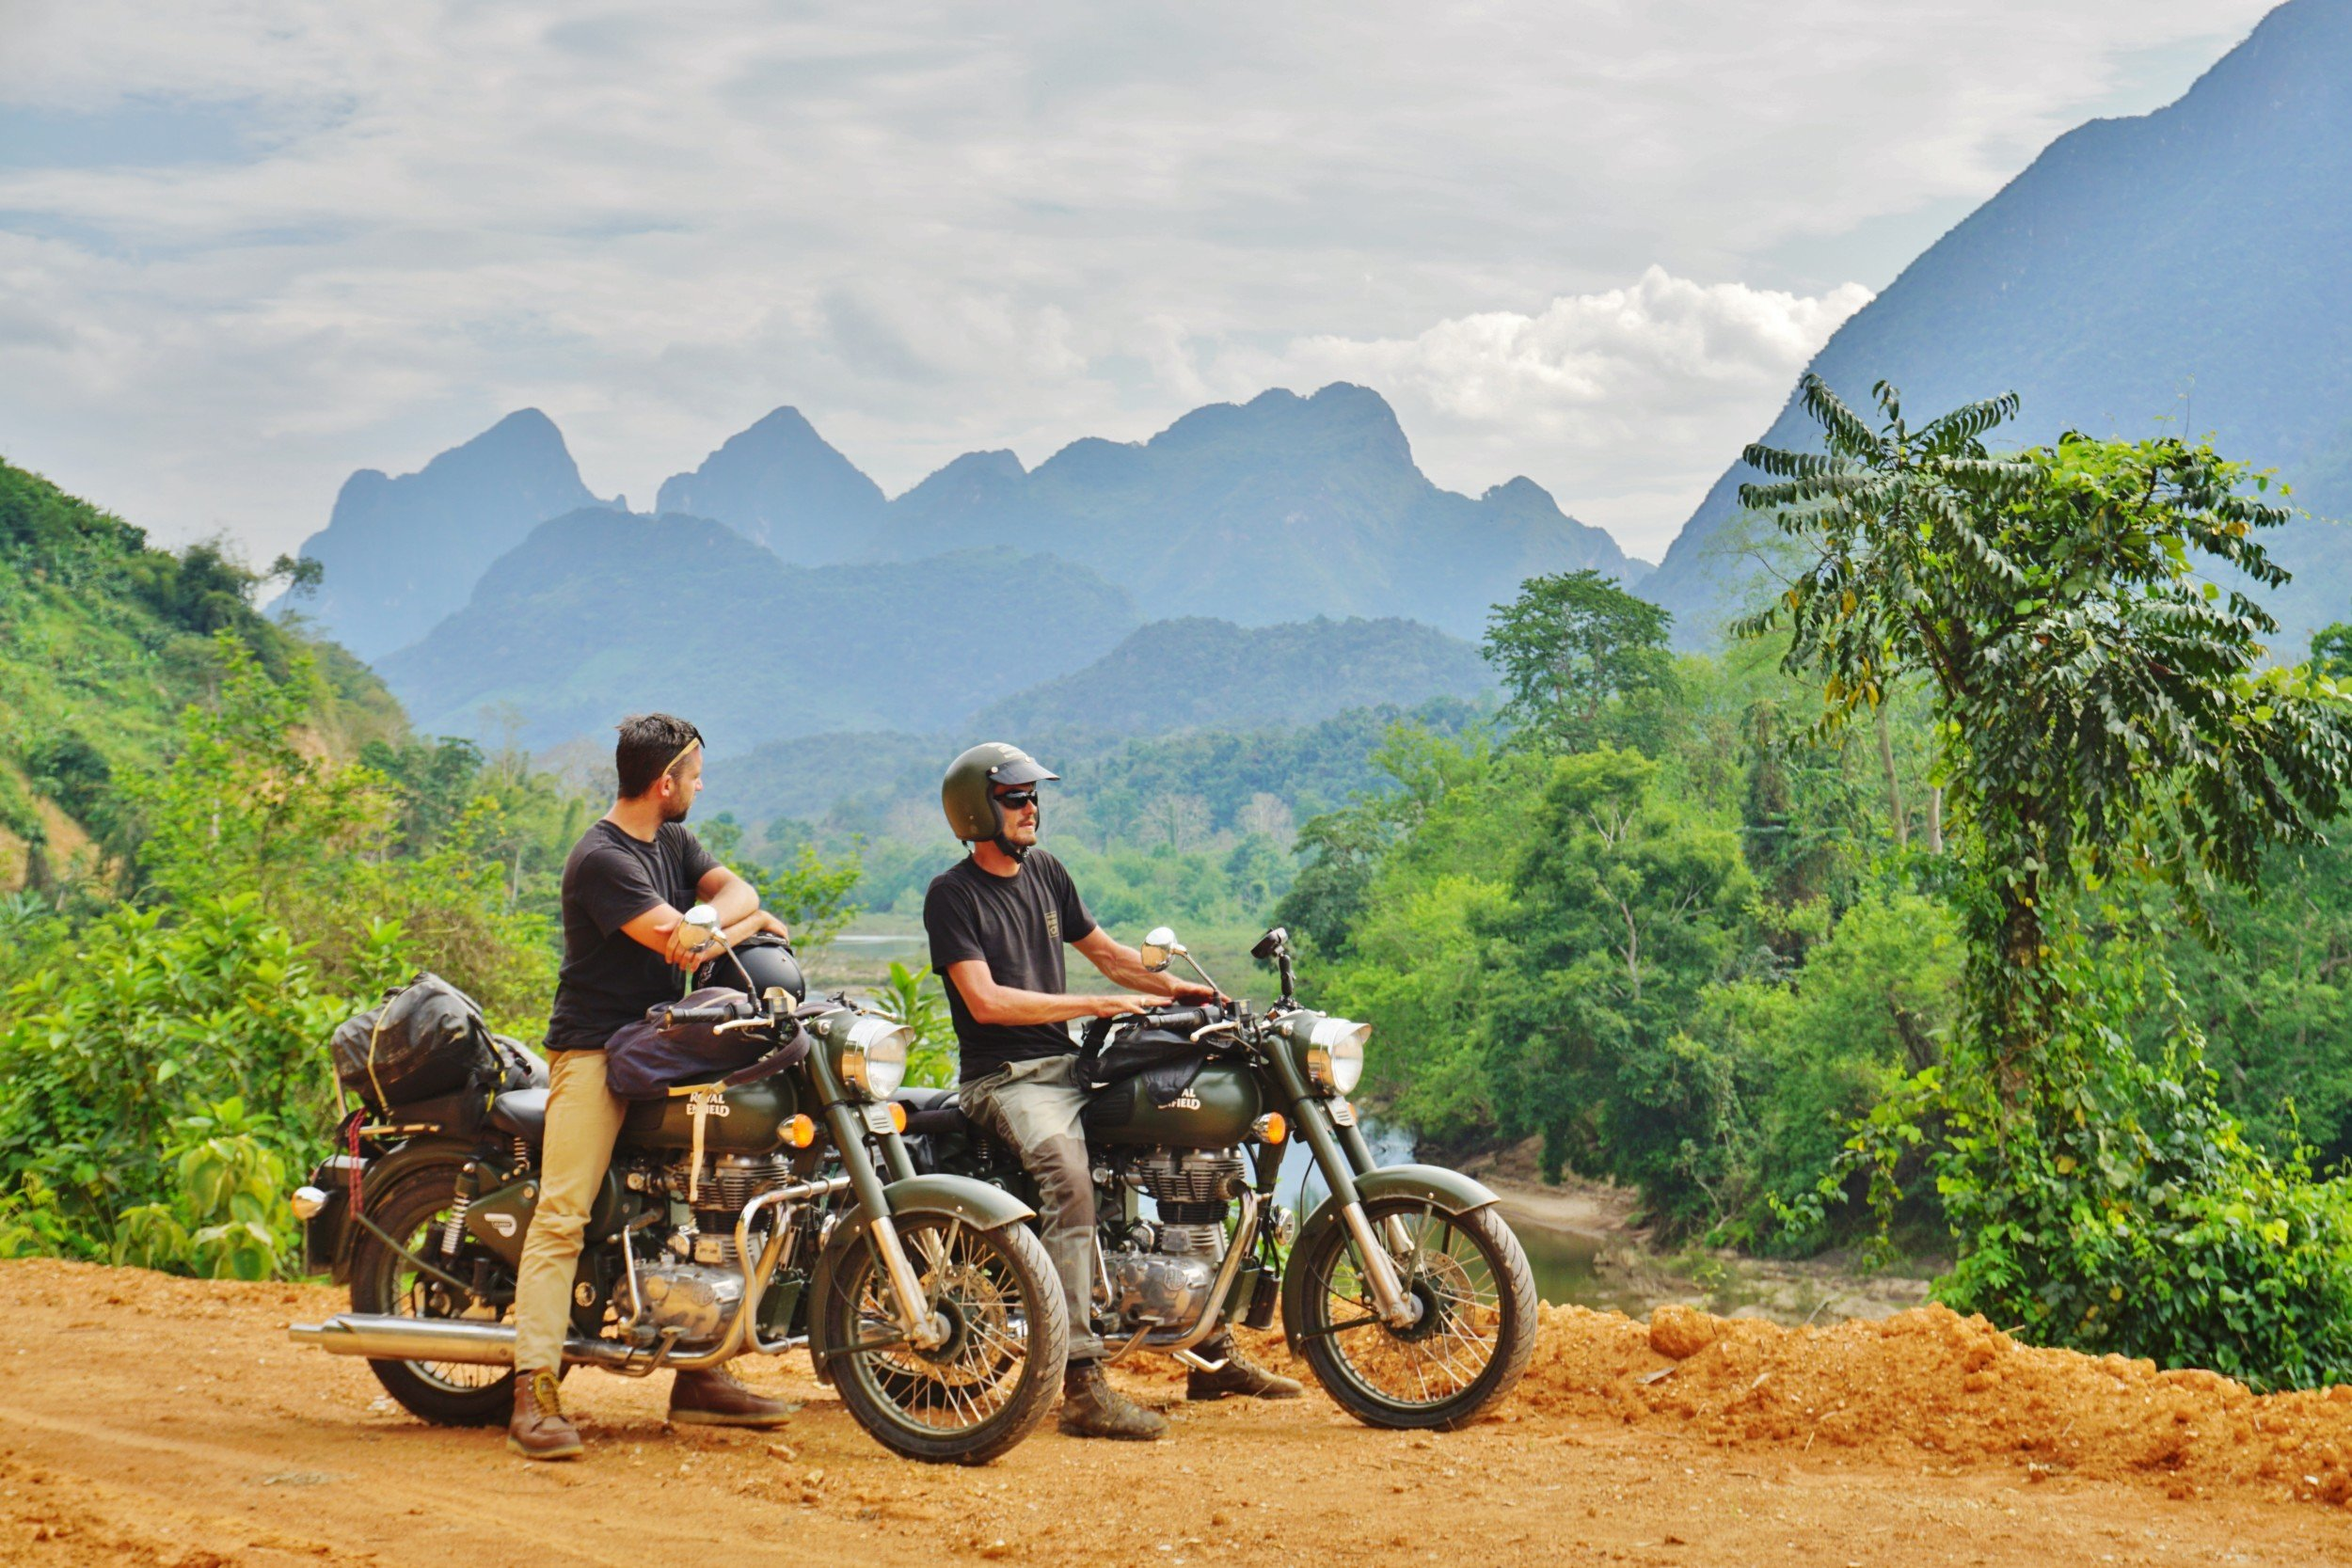 Motorcycle road trip Thailand & Laos - Beyond the Mekong